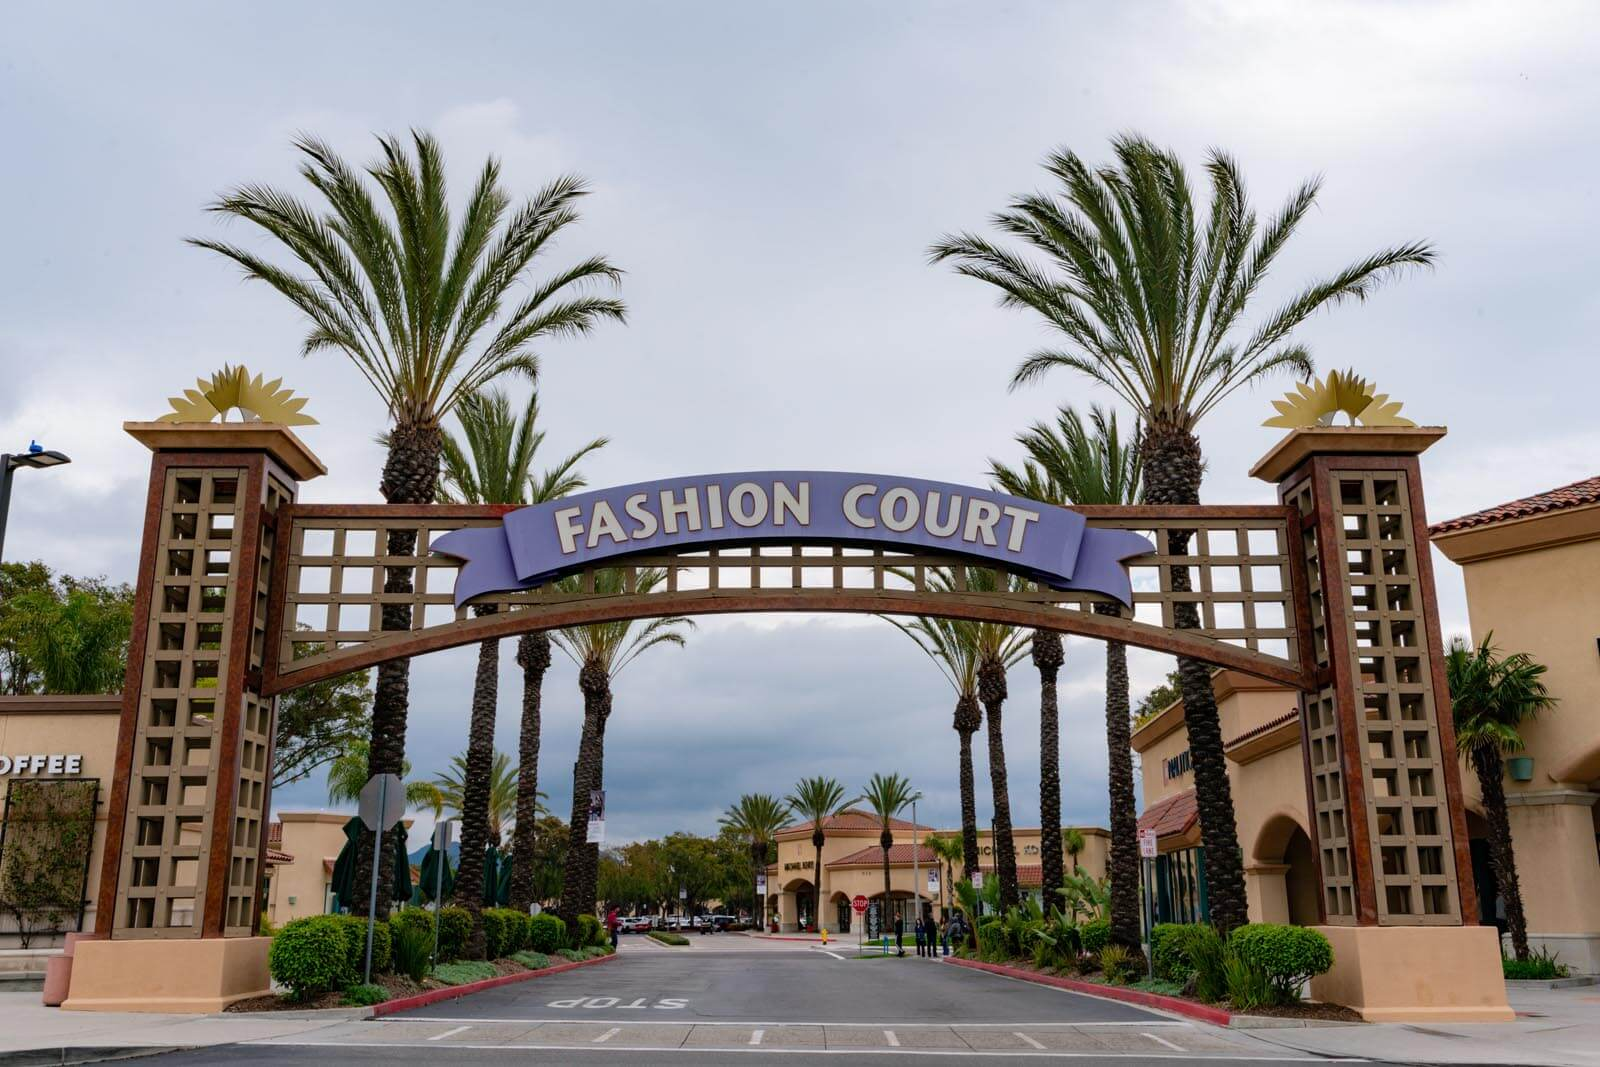 Camarillo Premium Outlet Mall